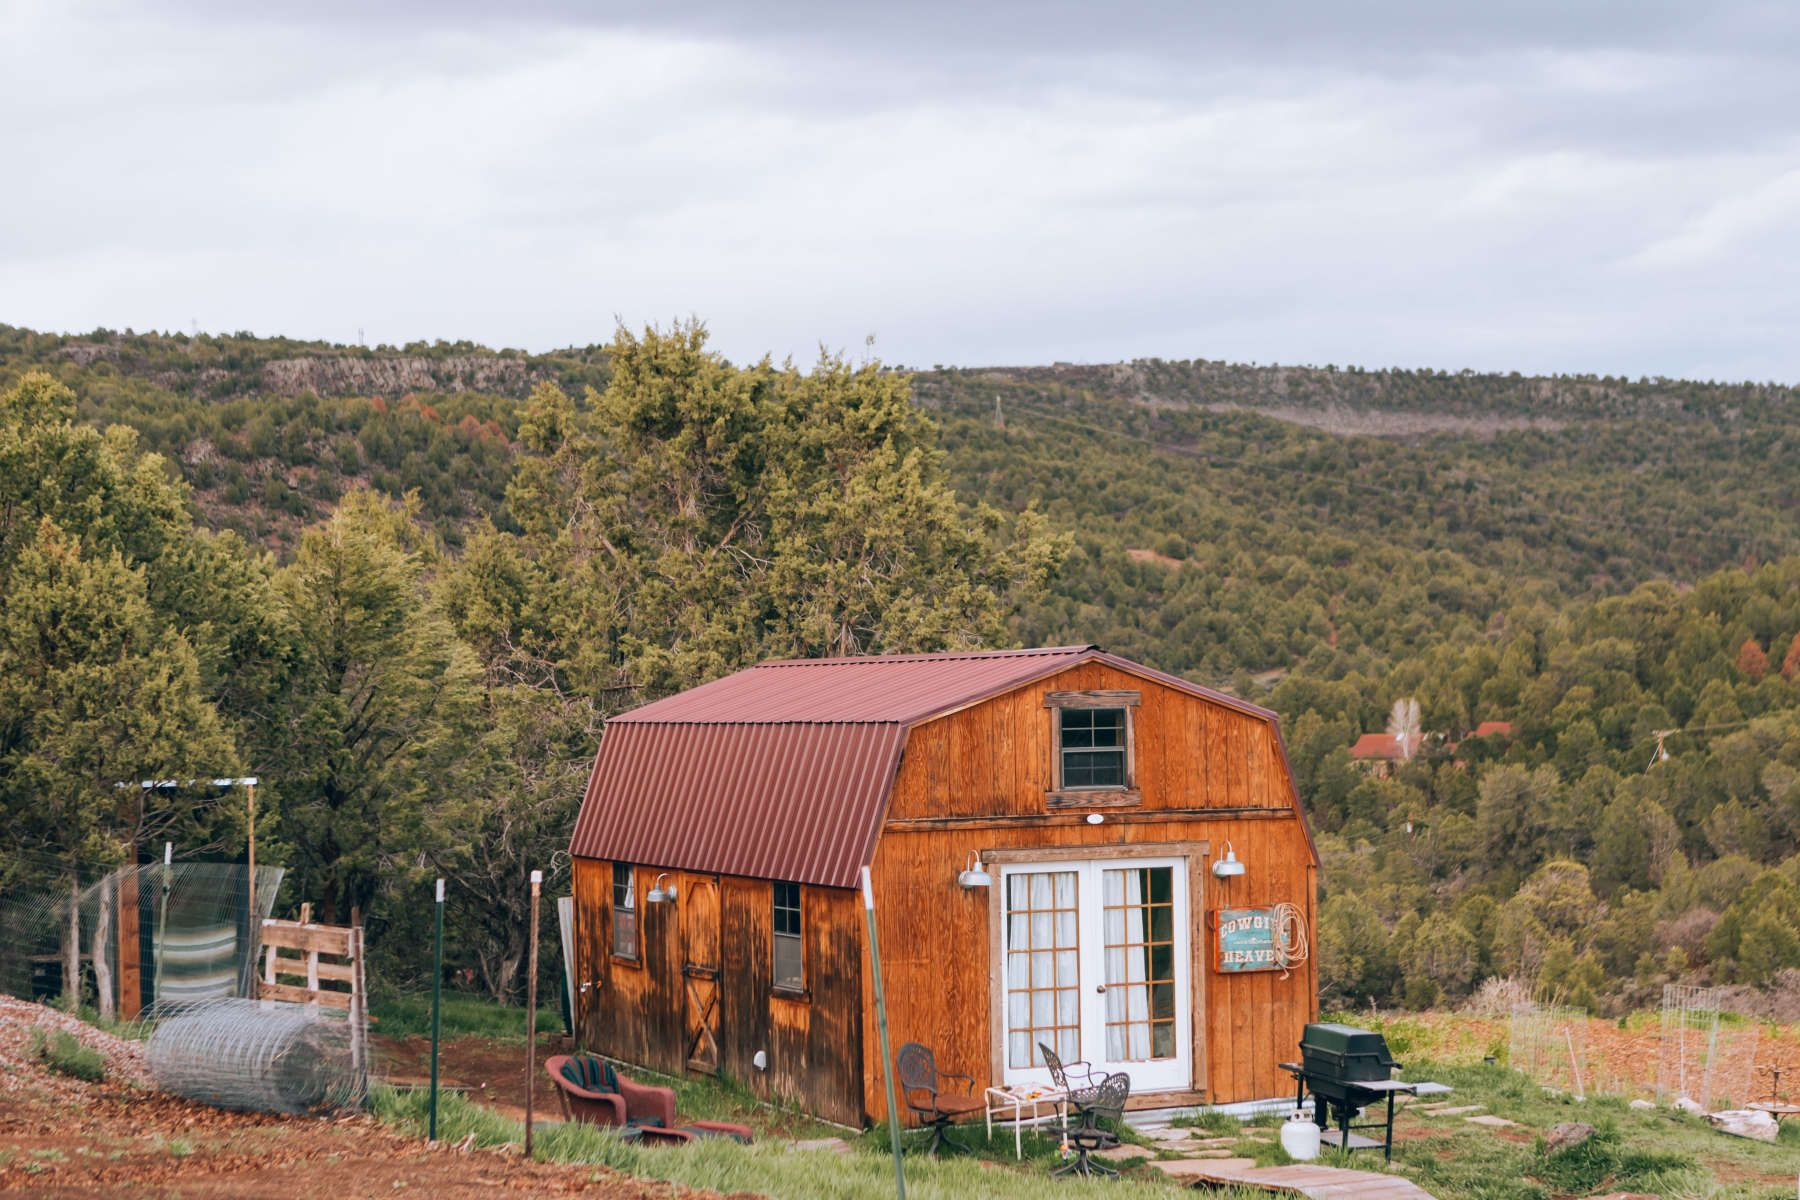 Check Out This Hipcamp In Cowgirl Cabin Private Horse Ranch Cedar Ridge Ranch Co Photo By Hipcamper Caitlin Fullam Cabin Tent Glamping Horse Ranch